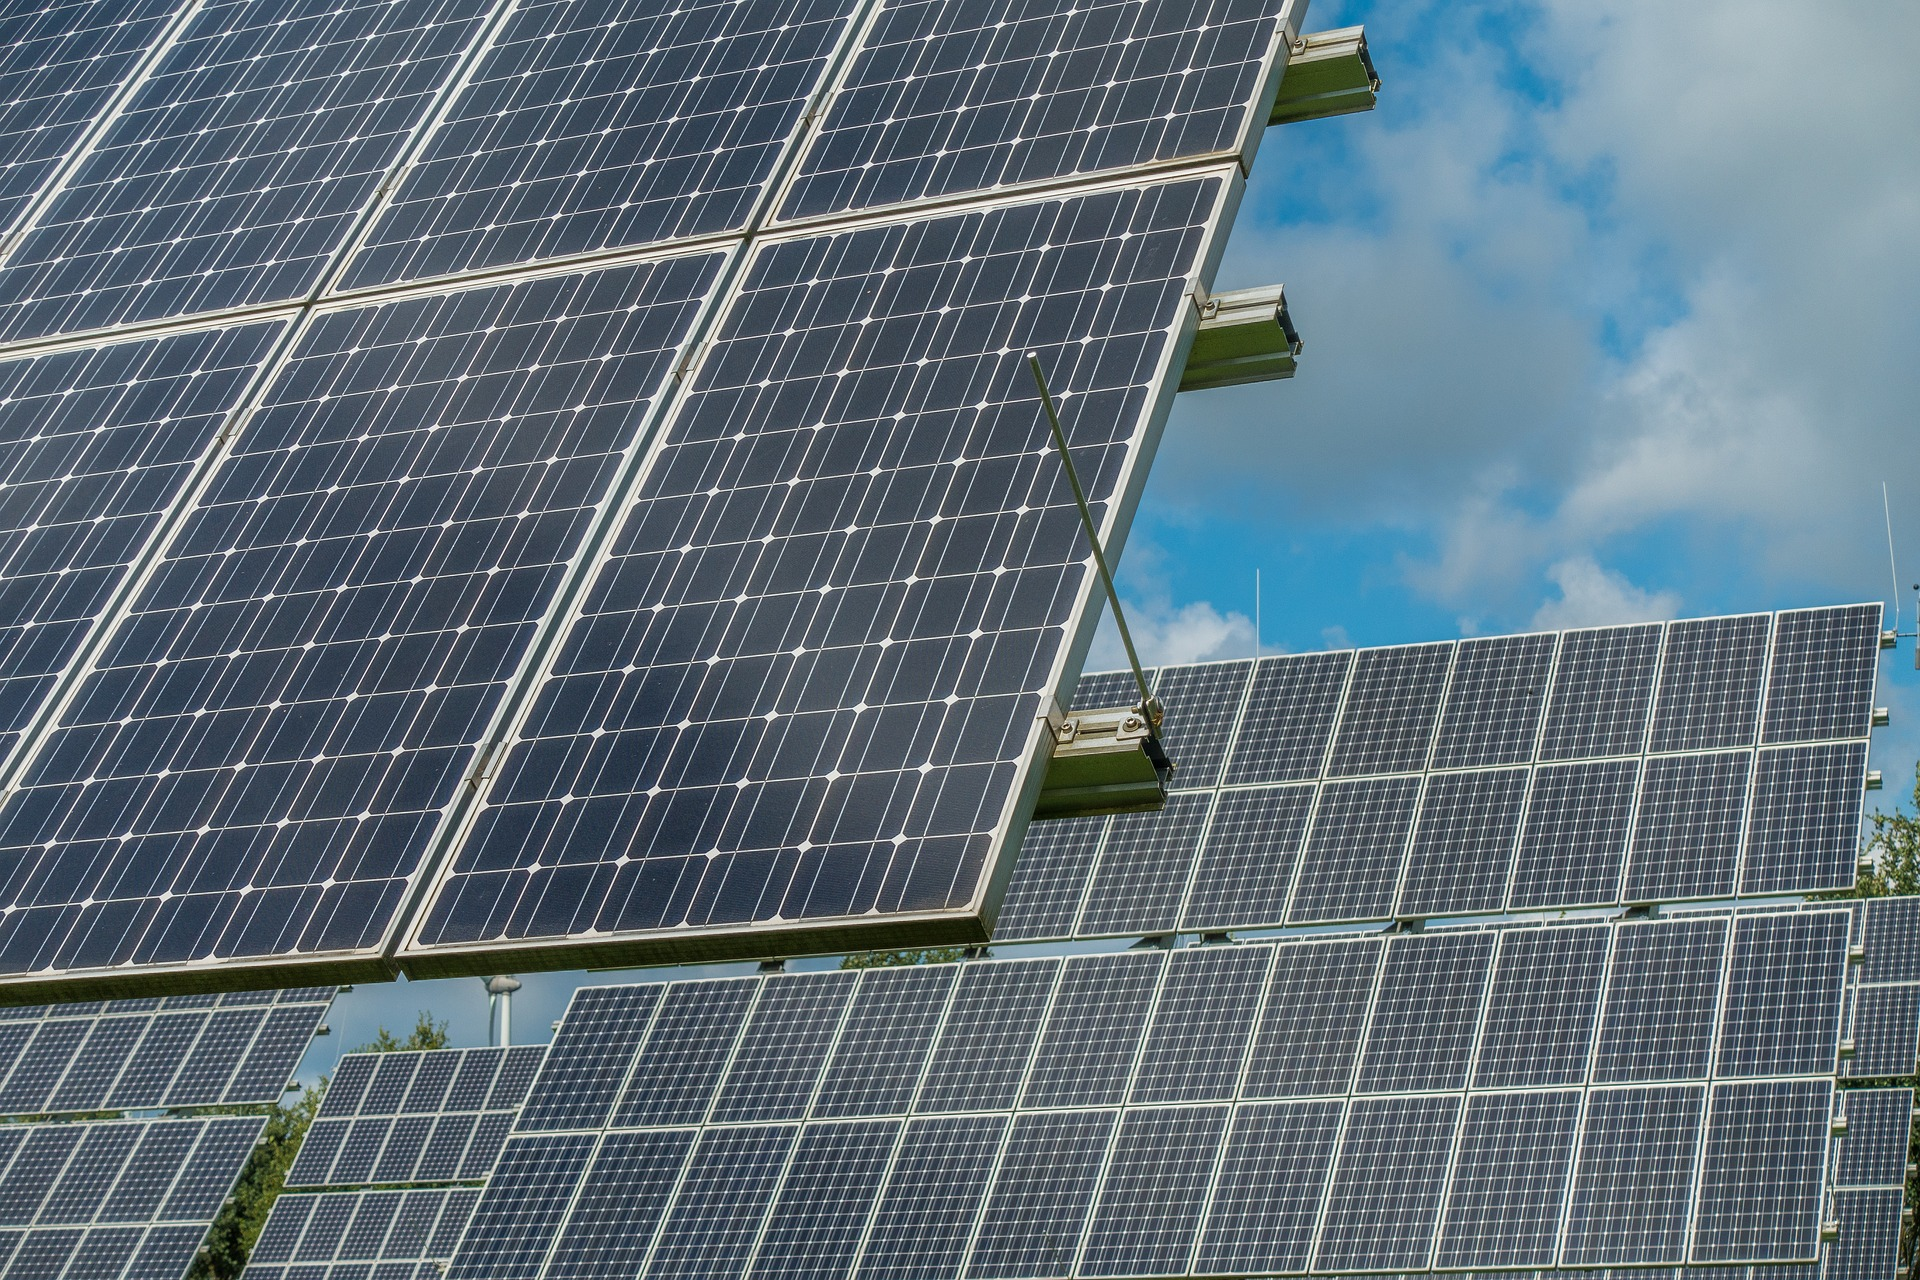 Isemaren Advises Tayan Energy Investment In The Development Of 8 Photovoltaic Plants Of 550 MW In Spain, Italy And Portugal